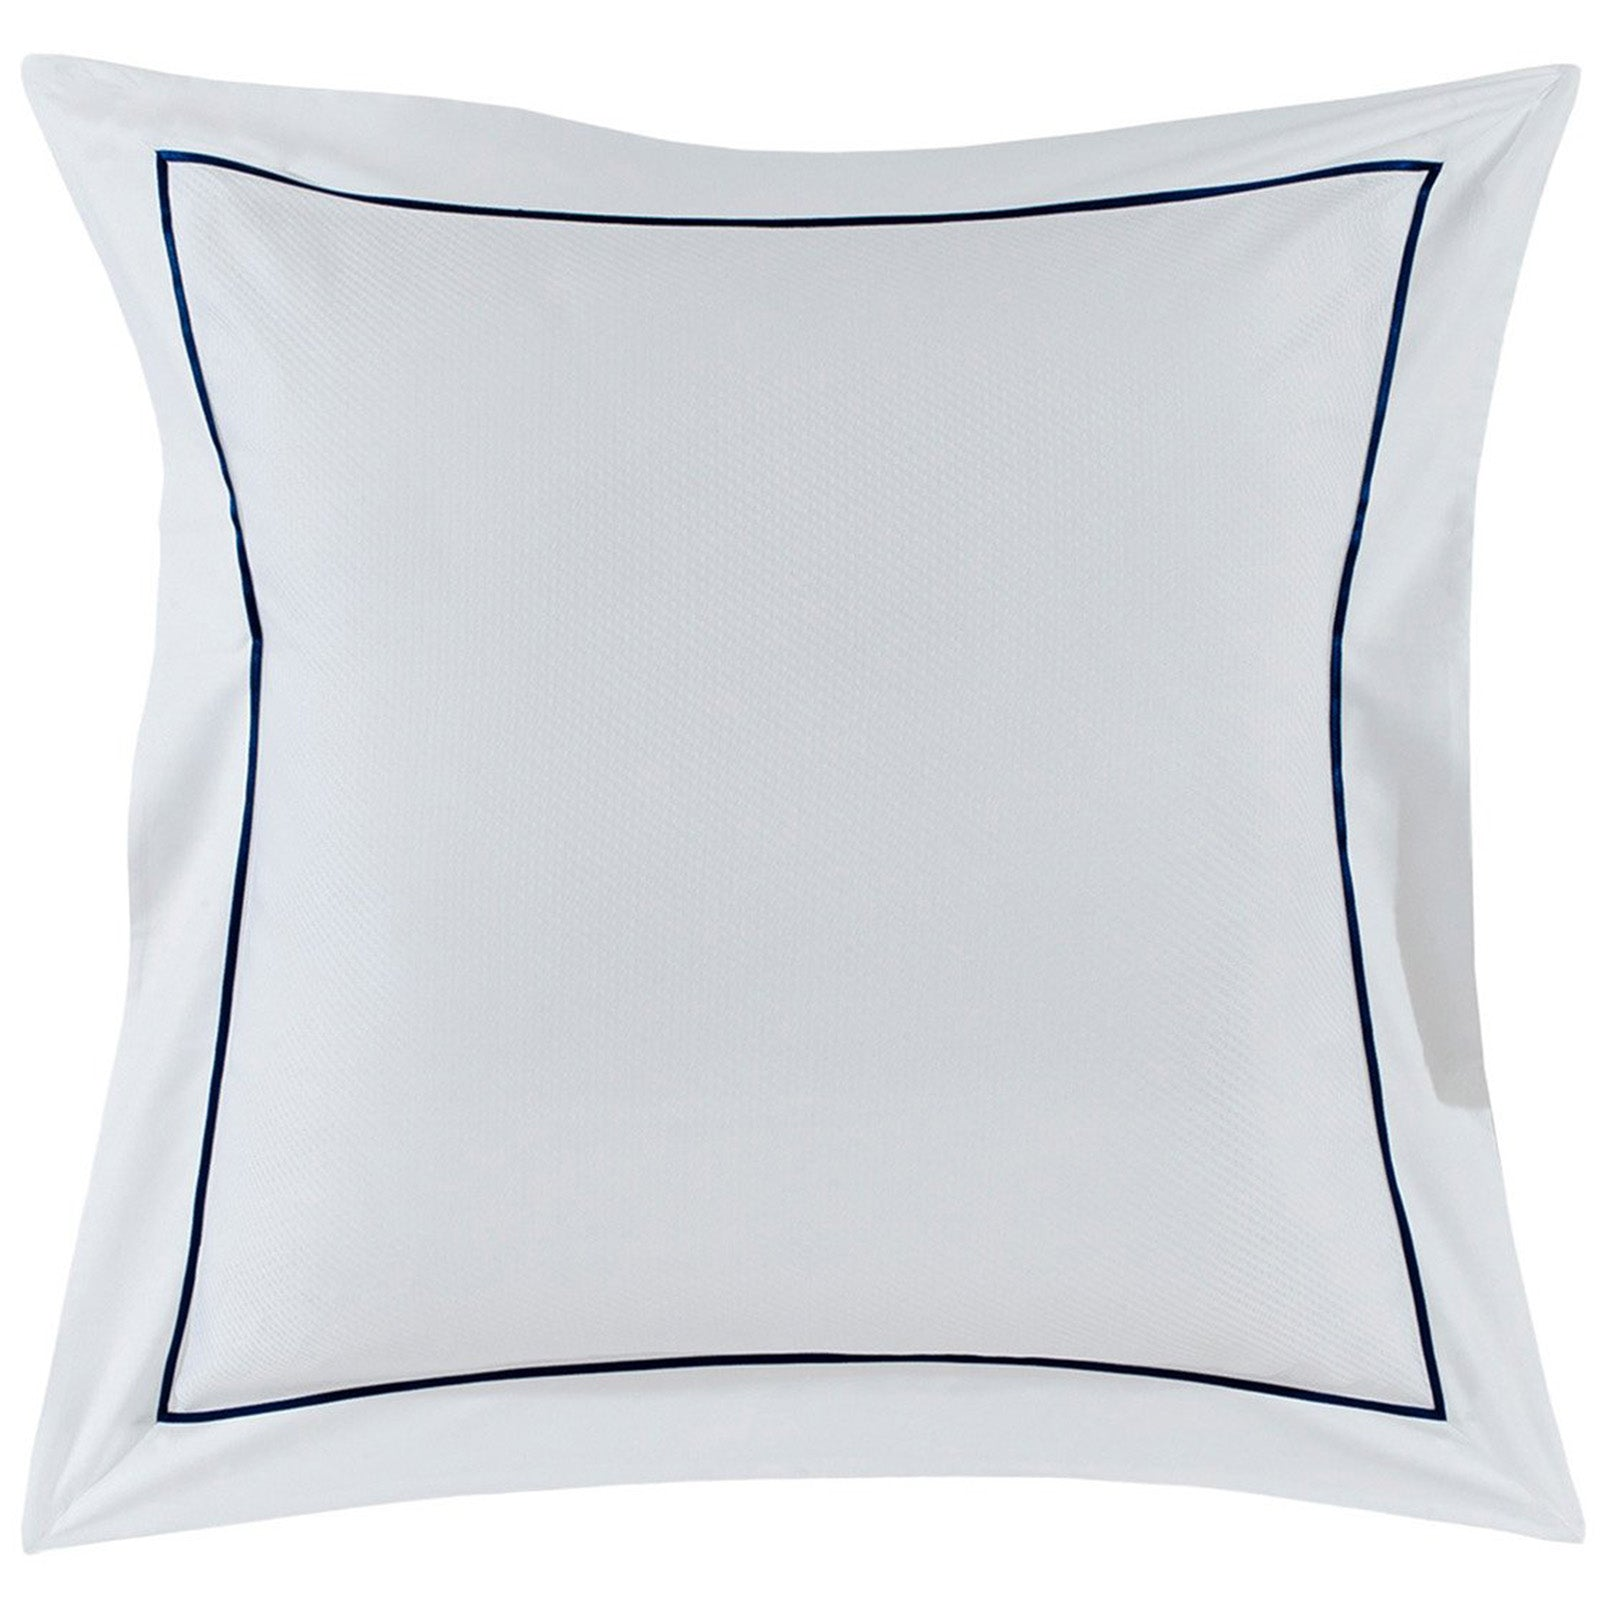 Alma White & Navy Square Oxford Pillowcase